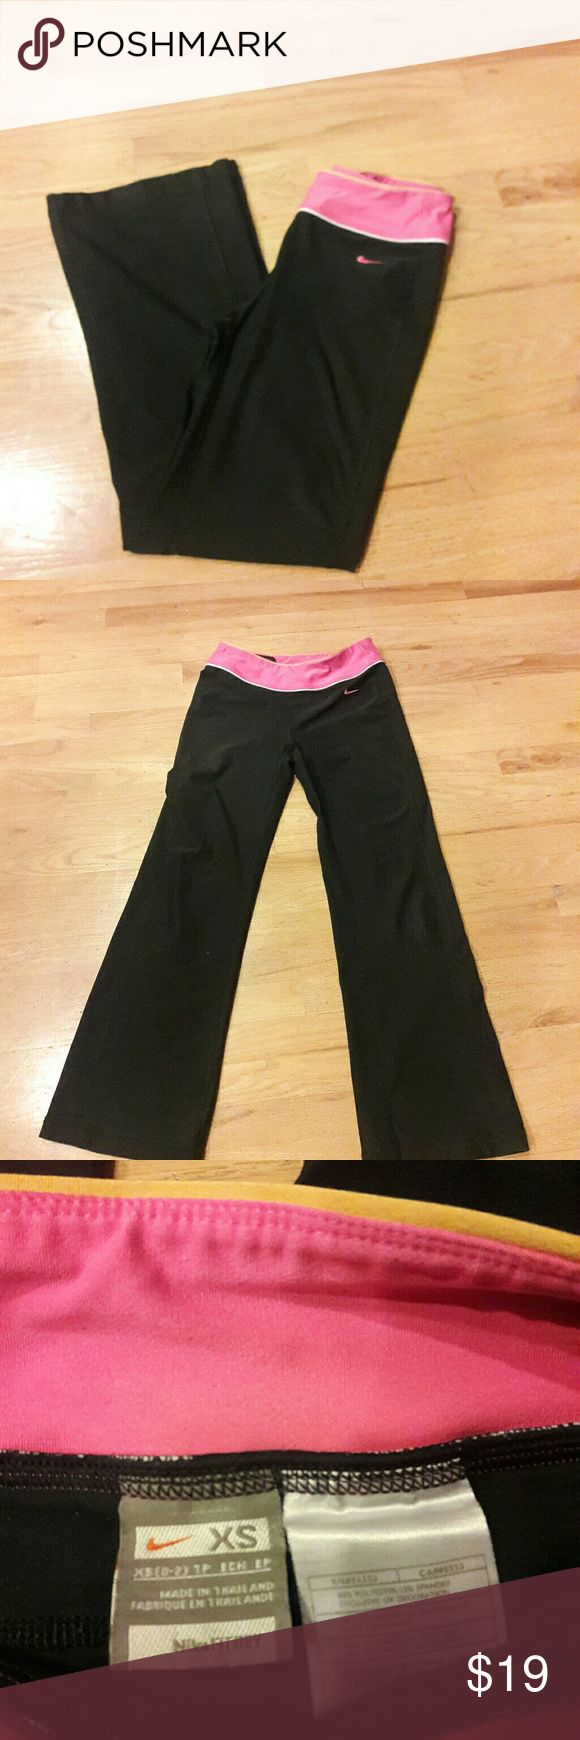 Nike Be Strong Women's training pants  Size XS Nike Be Strong Women's Size XS  Dri-Fit Training Pants Black Nike Pants